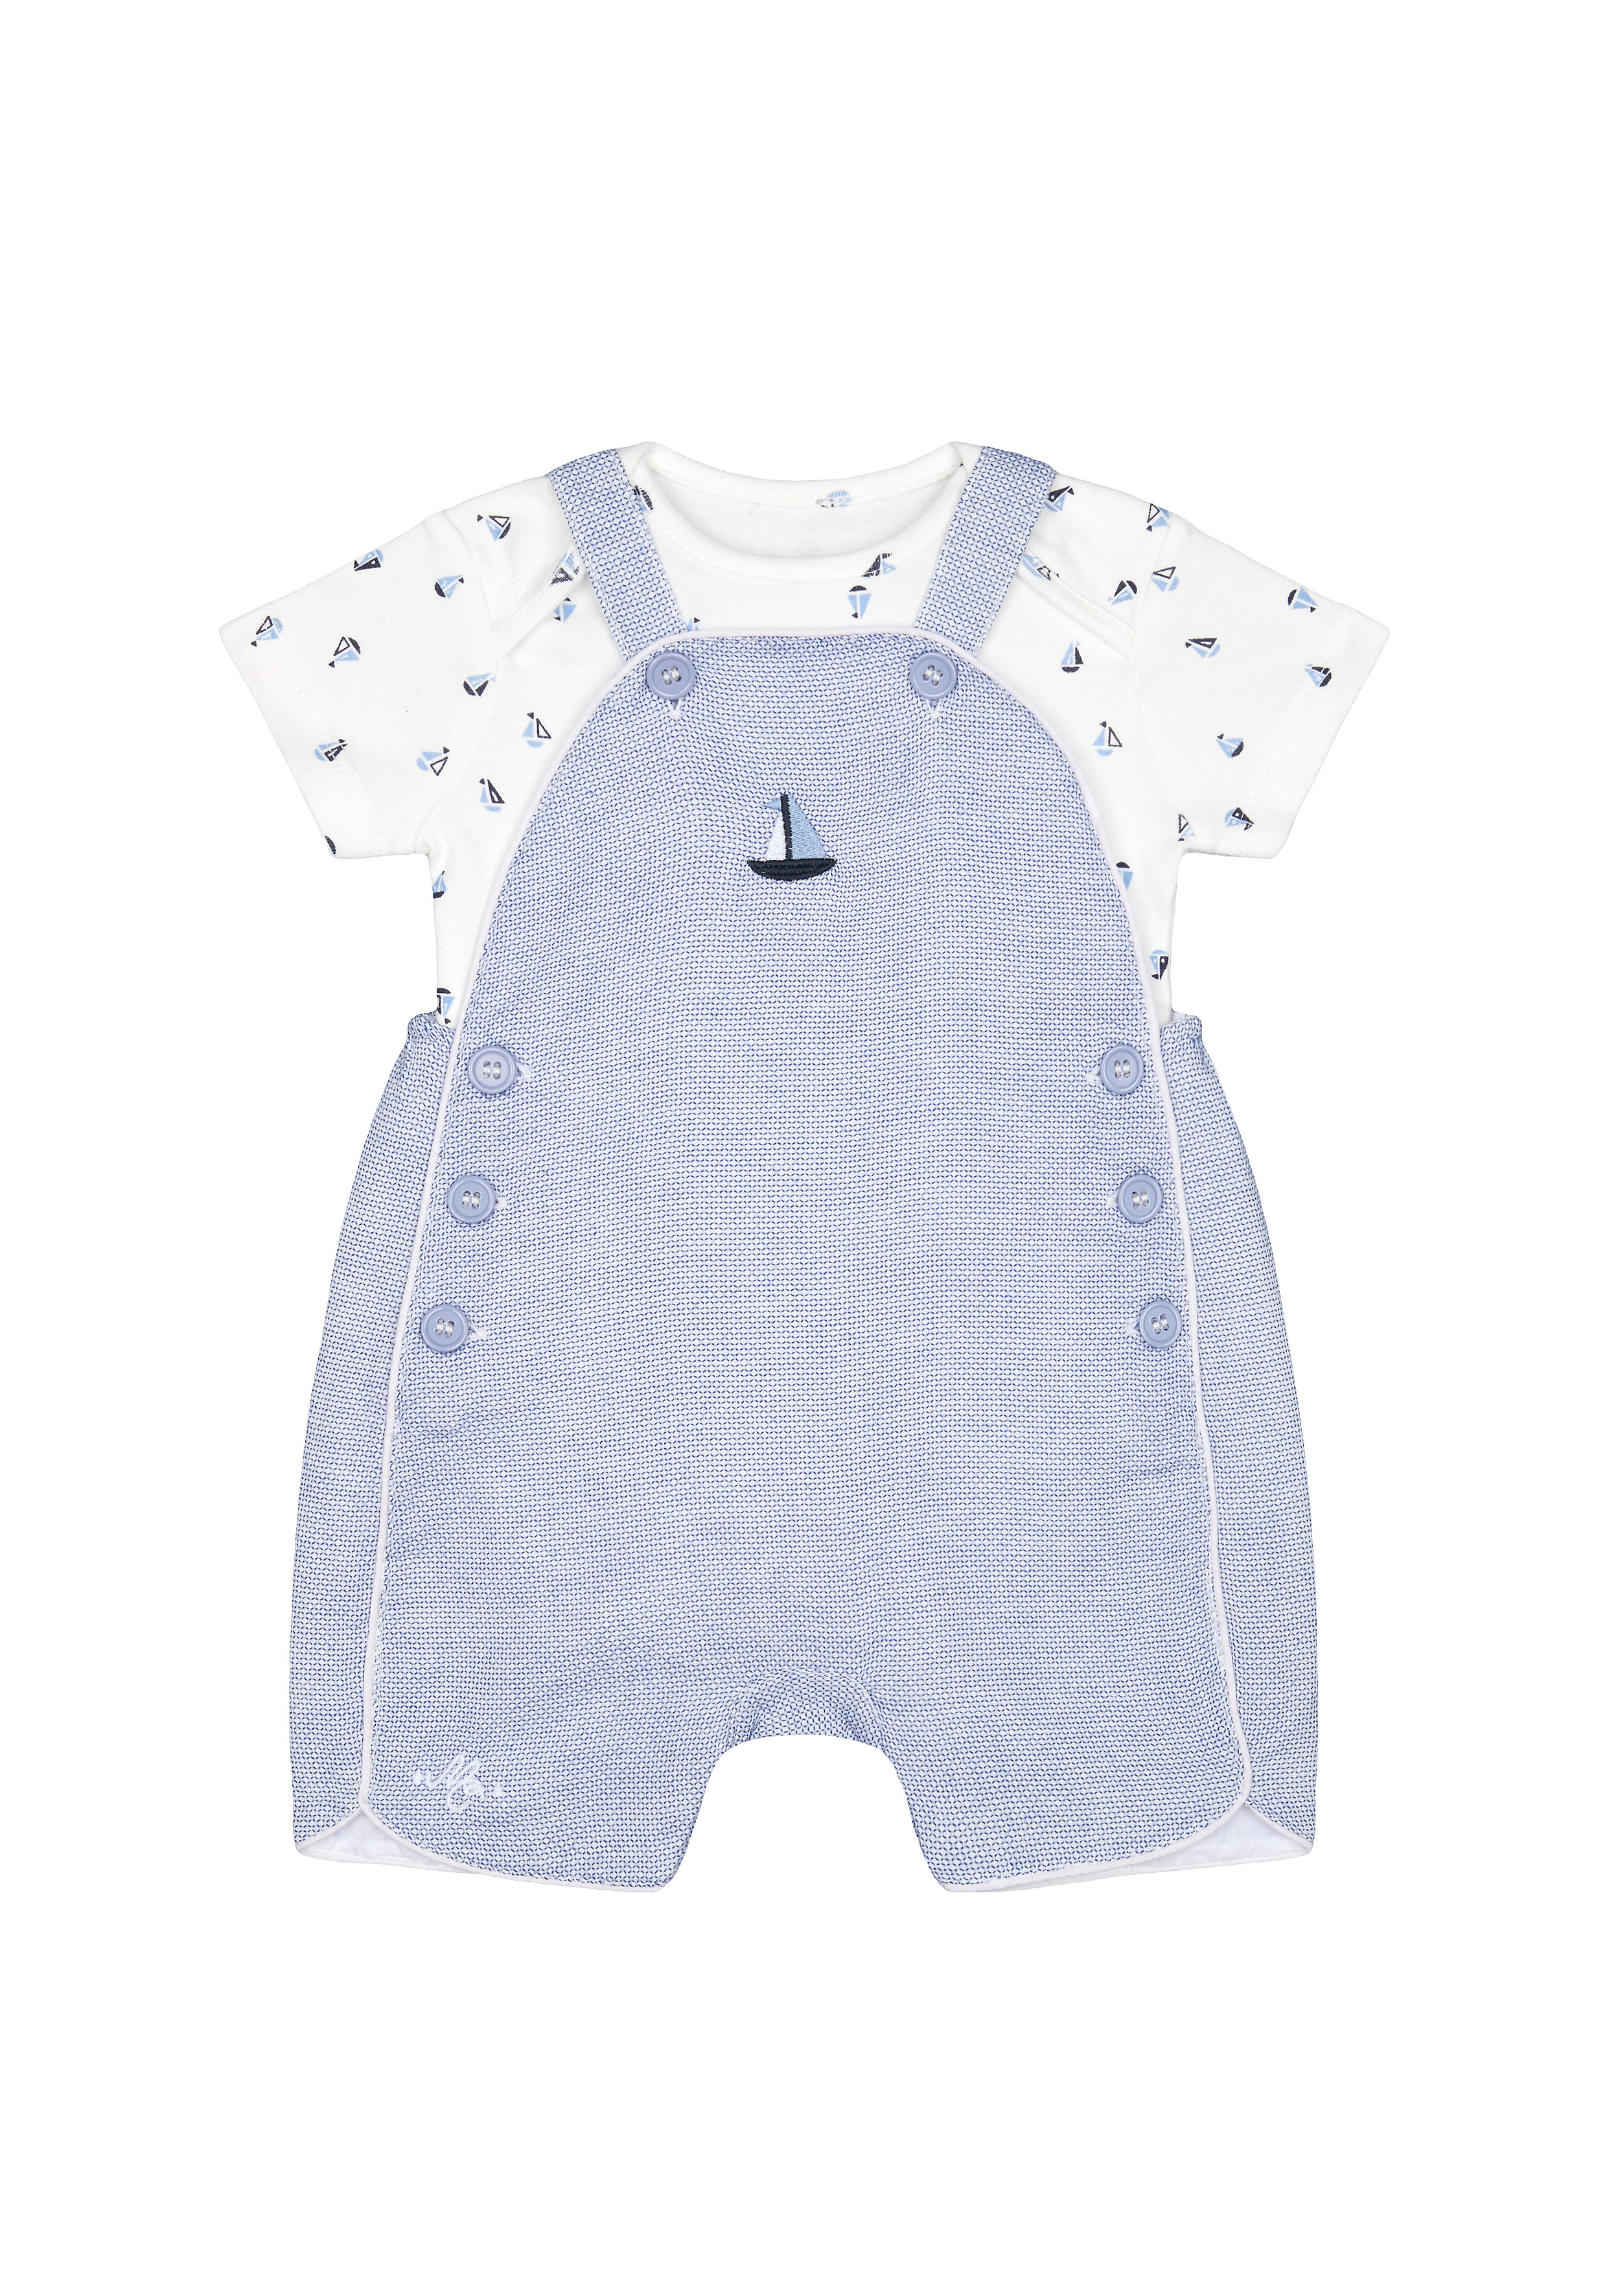 Mothercare | Boys Half Sleeves Dungaree Set Boat Embroidery - Blue